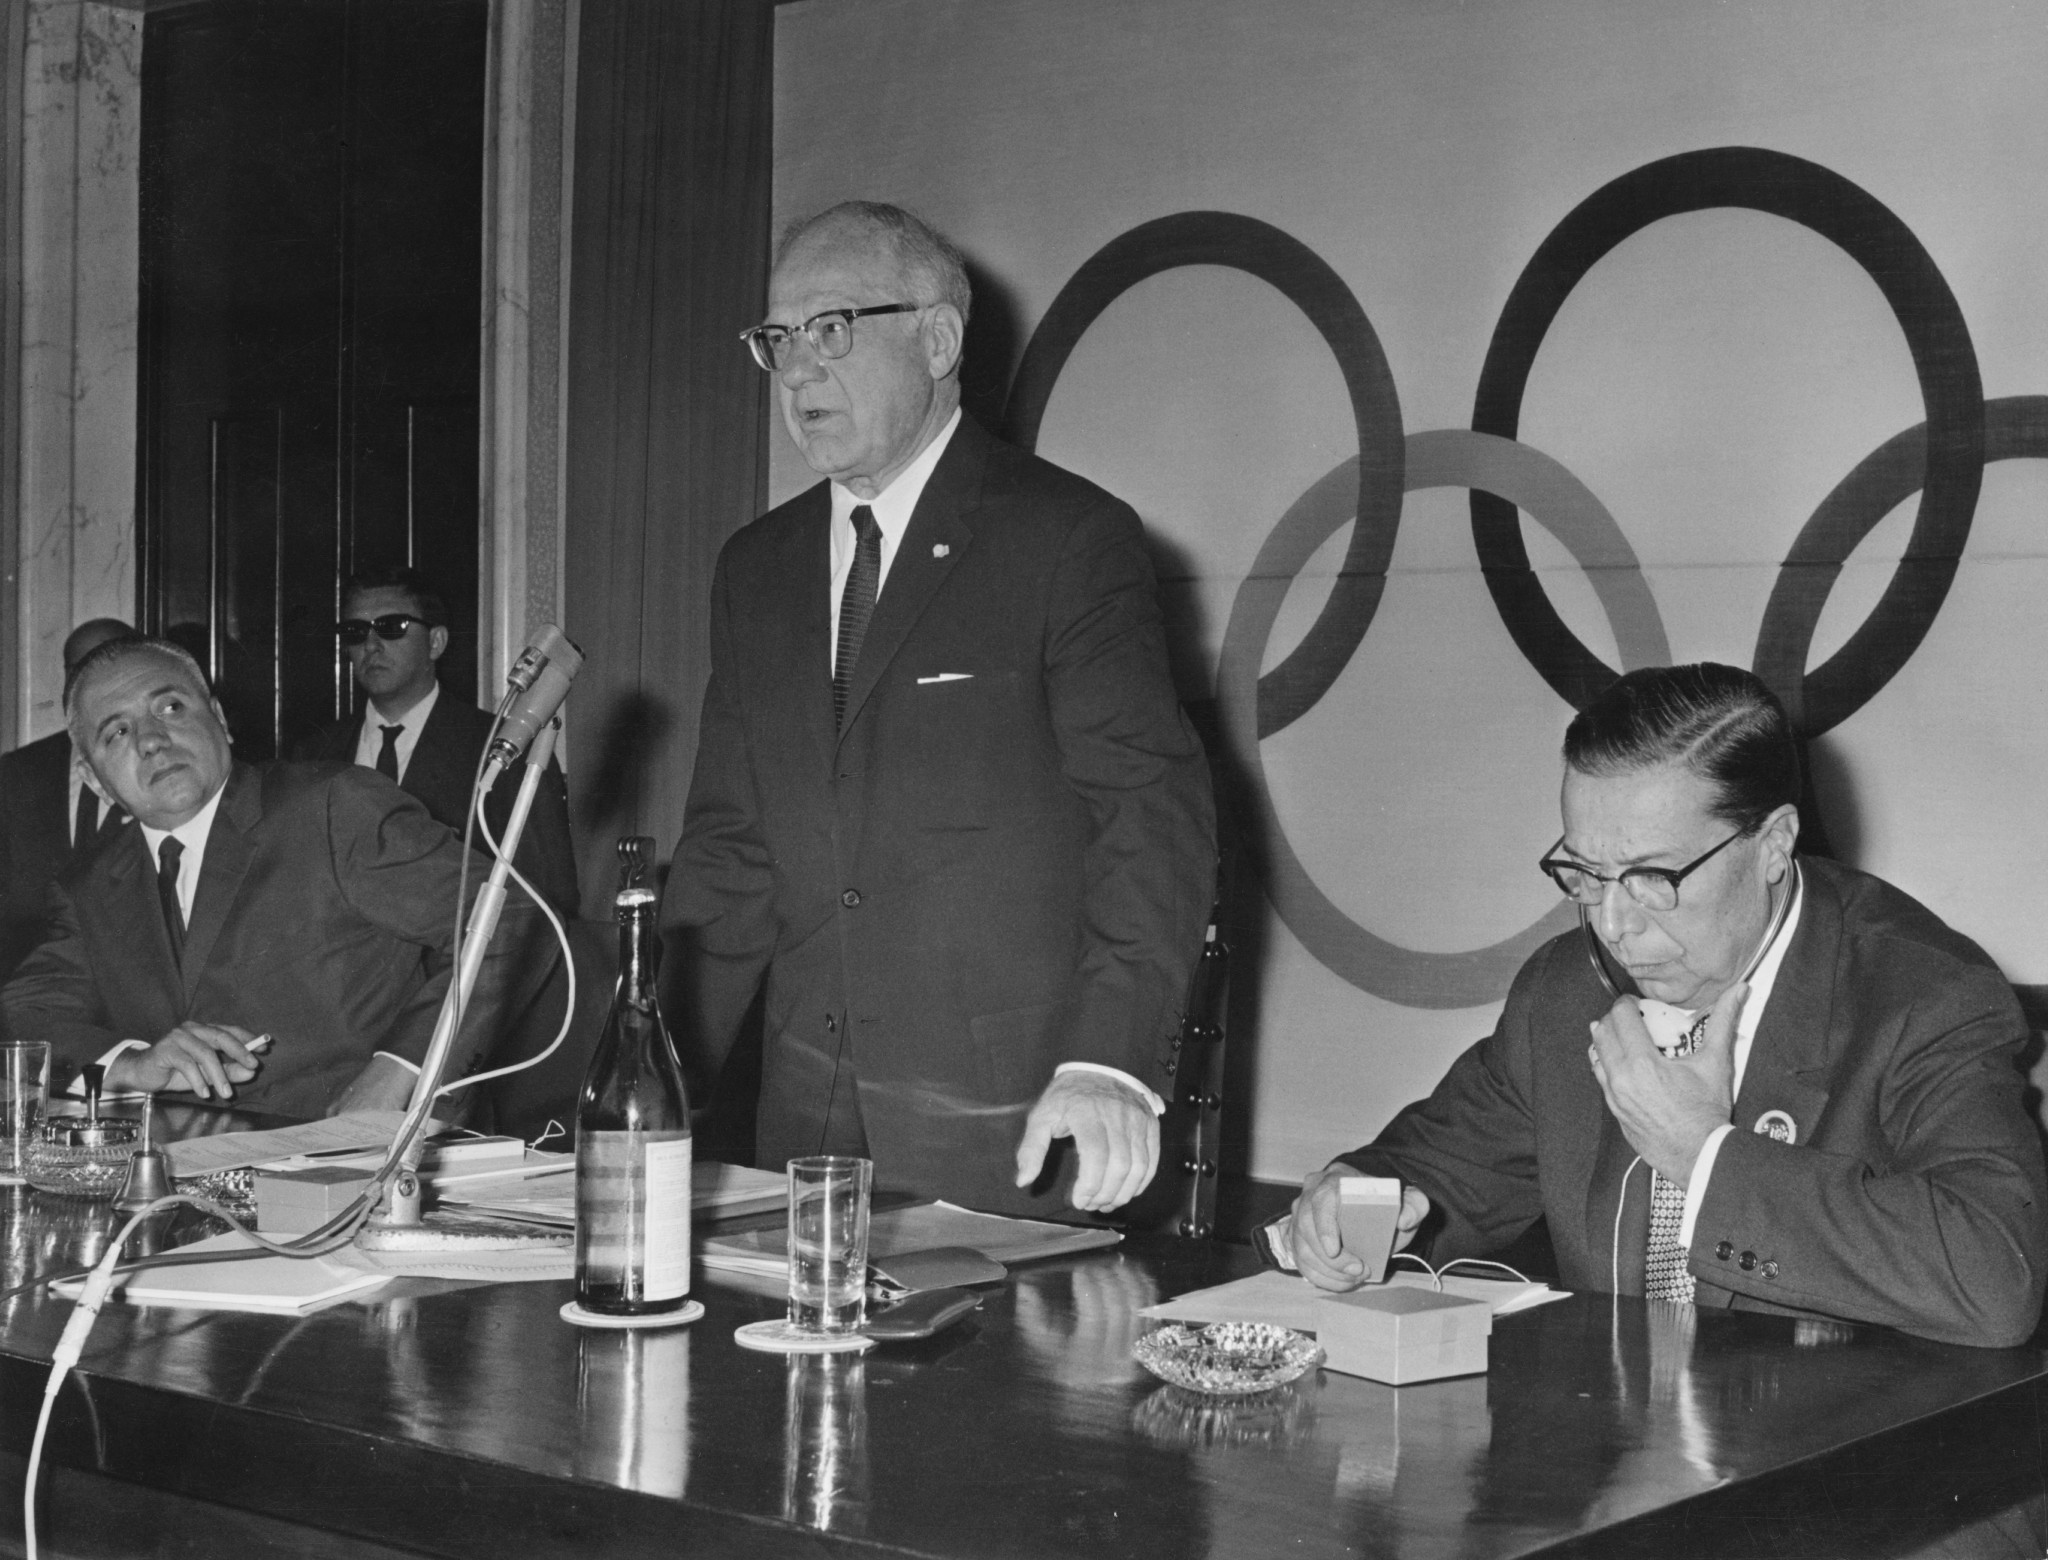 Avery Brundage (1887 - 1975), President of the International Olympic Committee (IOC), addresses a meeting of the IOC at the Foro Italico in Rome, Italy, 30th September 1965 ©Getty Images